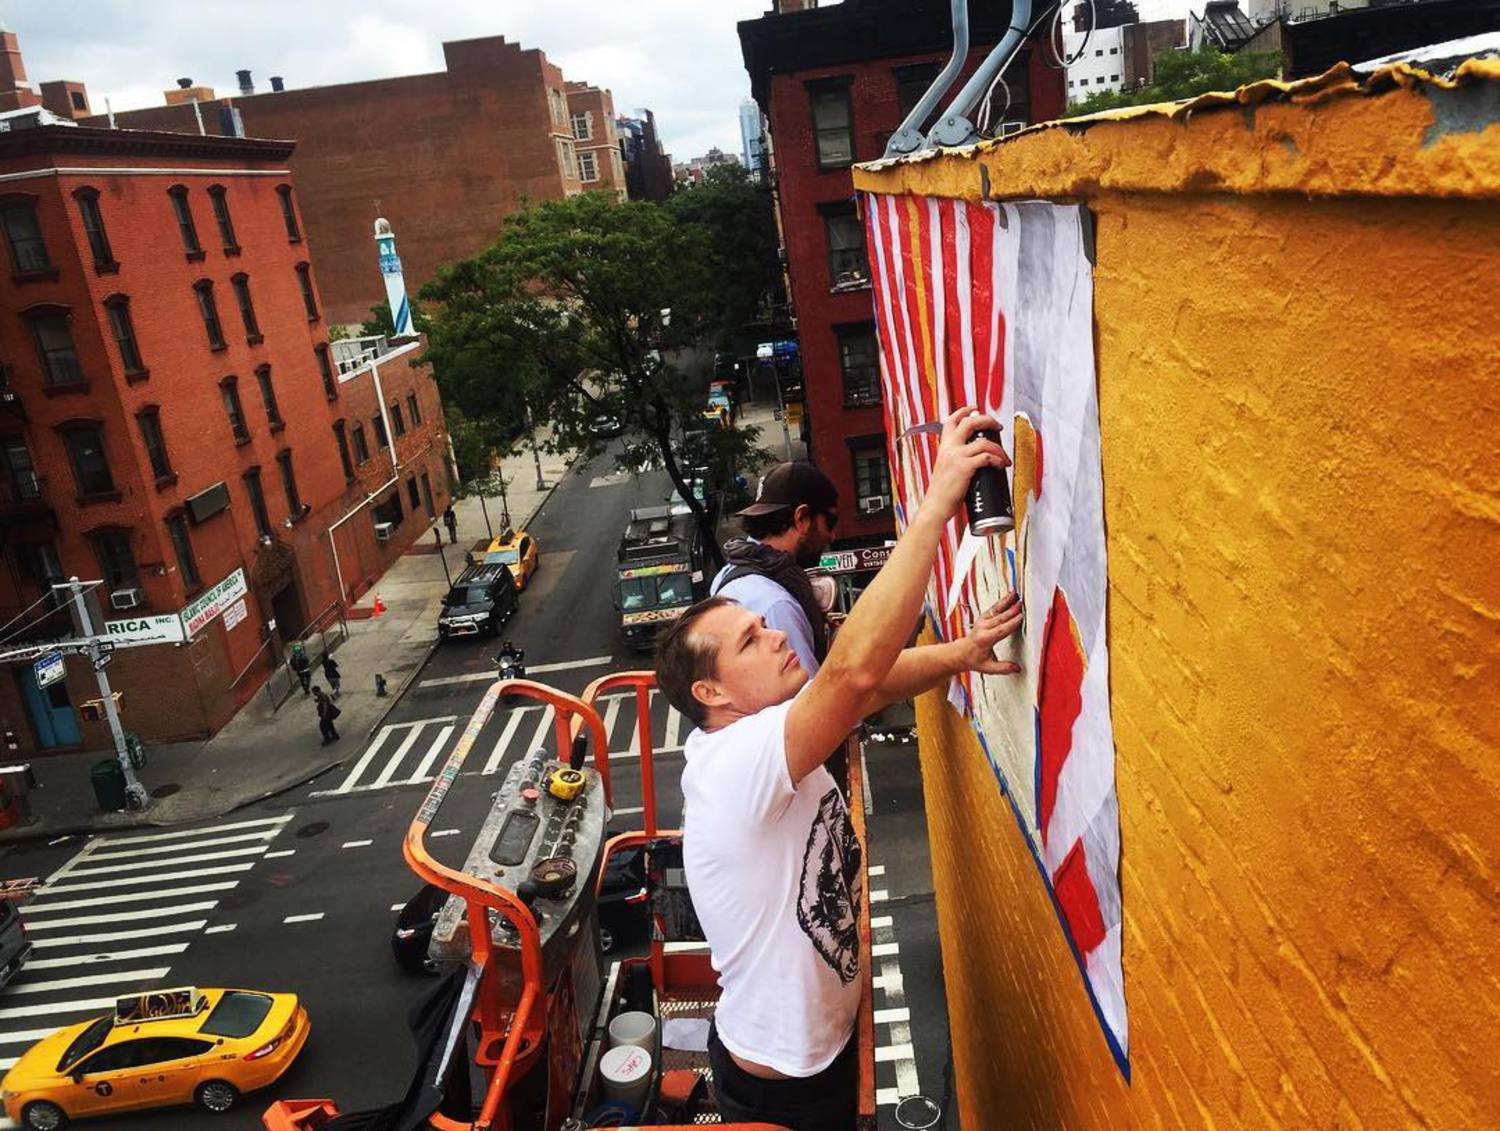 Starting a new #mural in #NYC. #obeygiant #shepardfairey #publicart #thelisaproject @thelisaprojectnyc